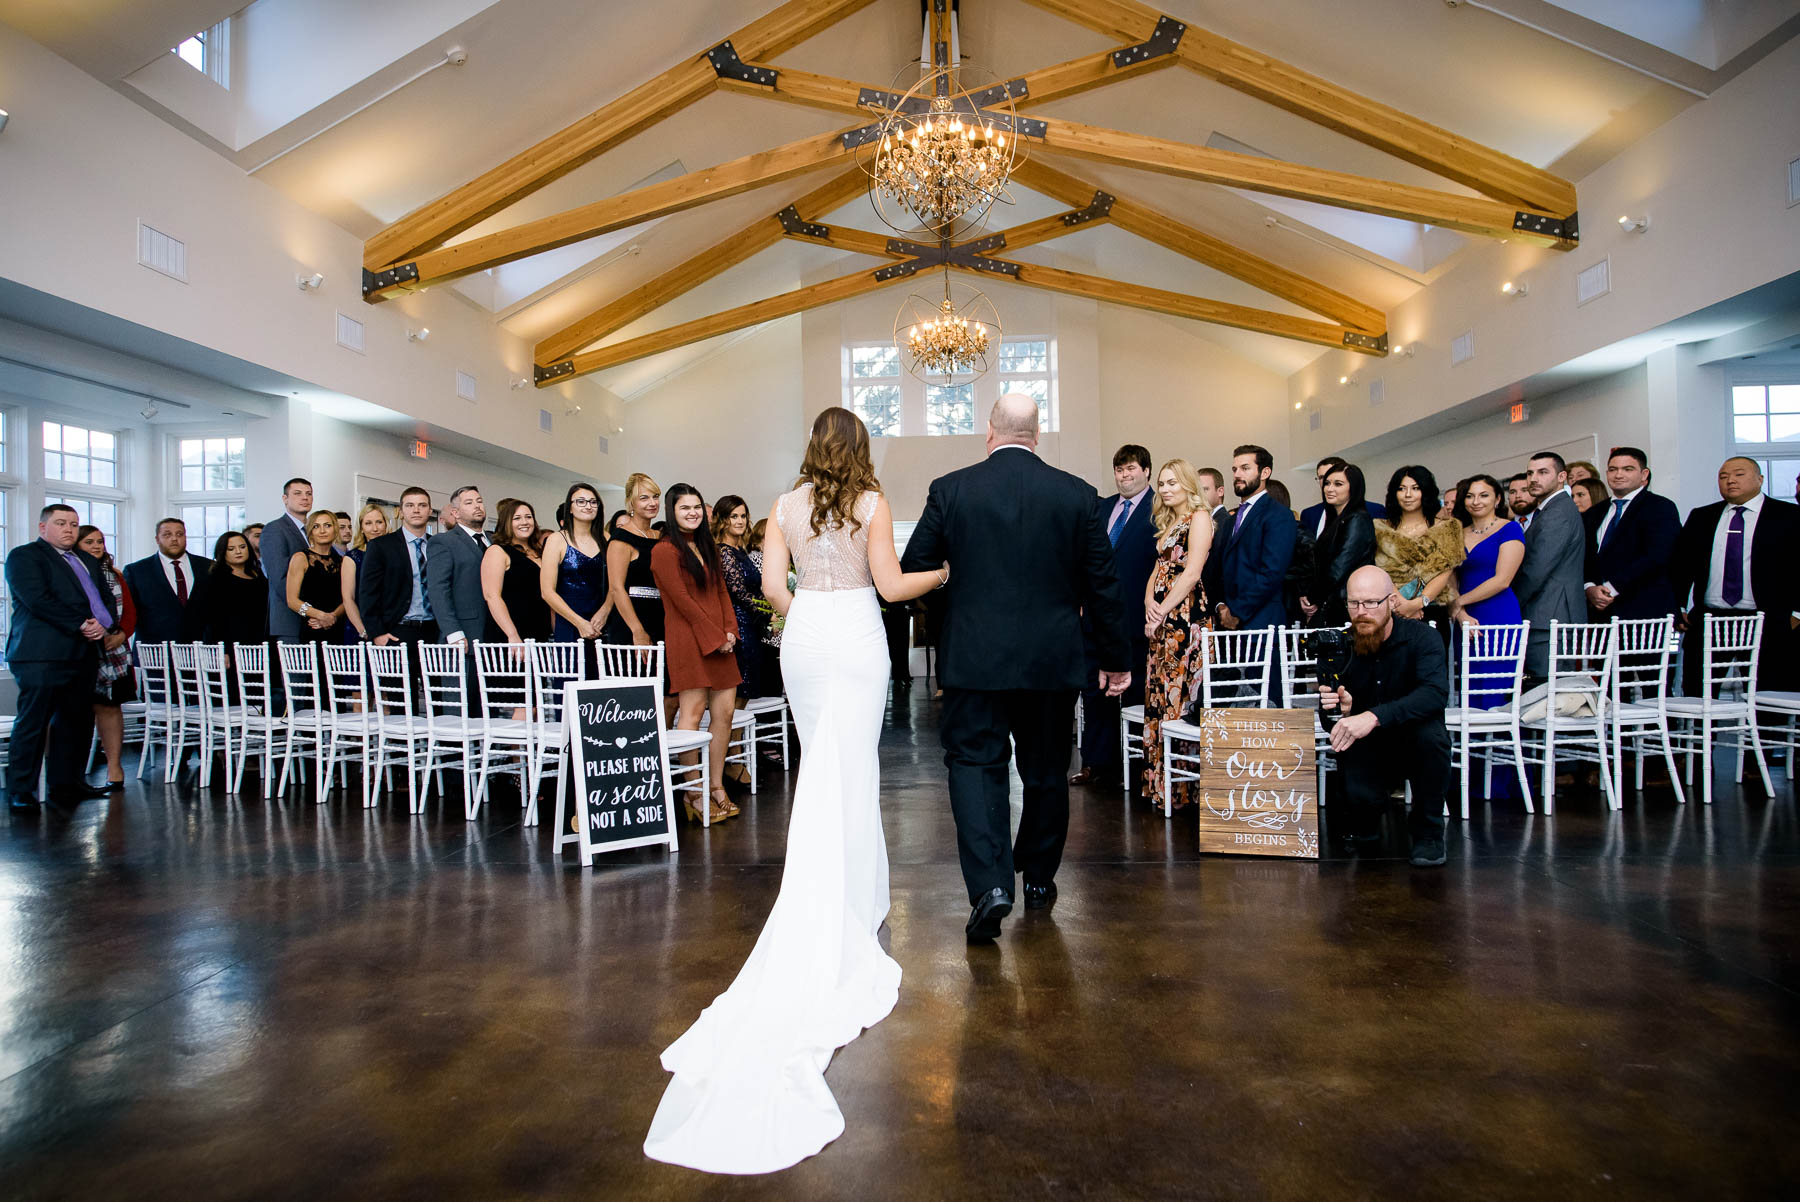 Father and bride walk down the aisle during a wedding ceremony at the Manor House in Littleton, Colorado.